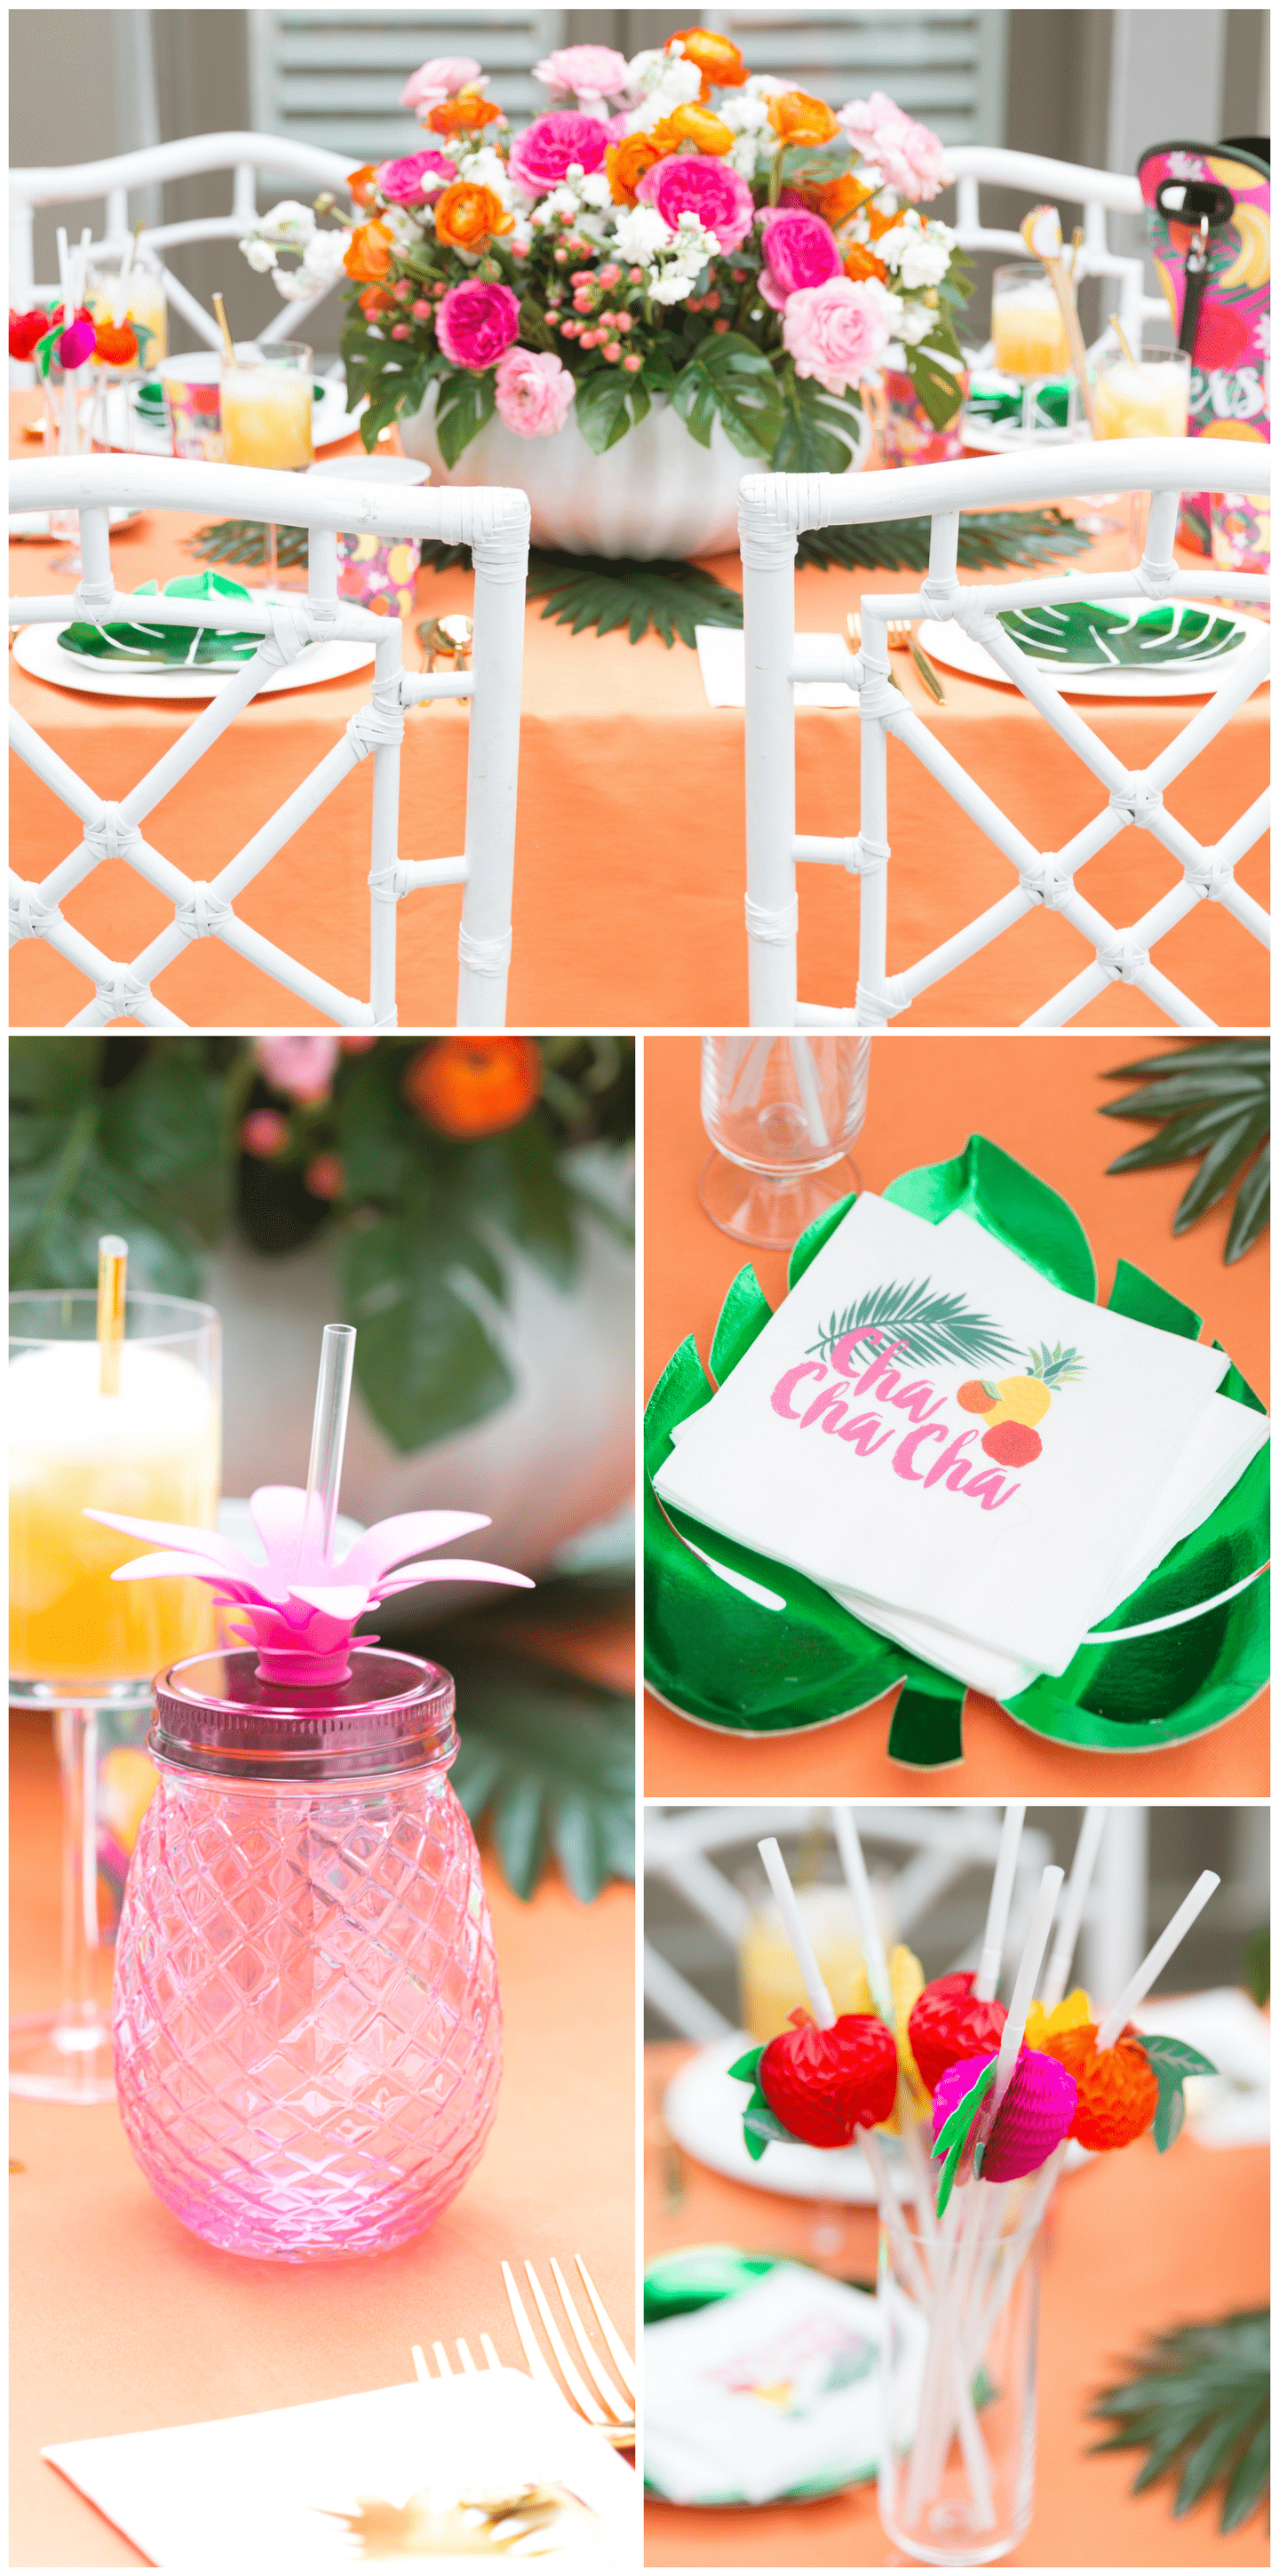 Tablescape Tips for a Tropical Soiree!